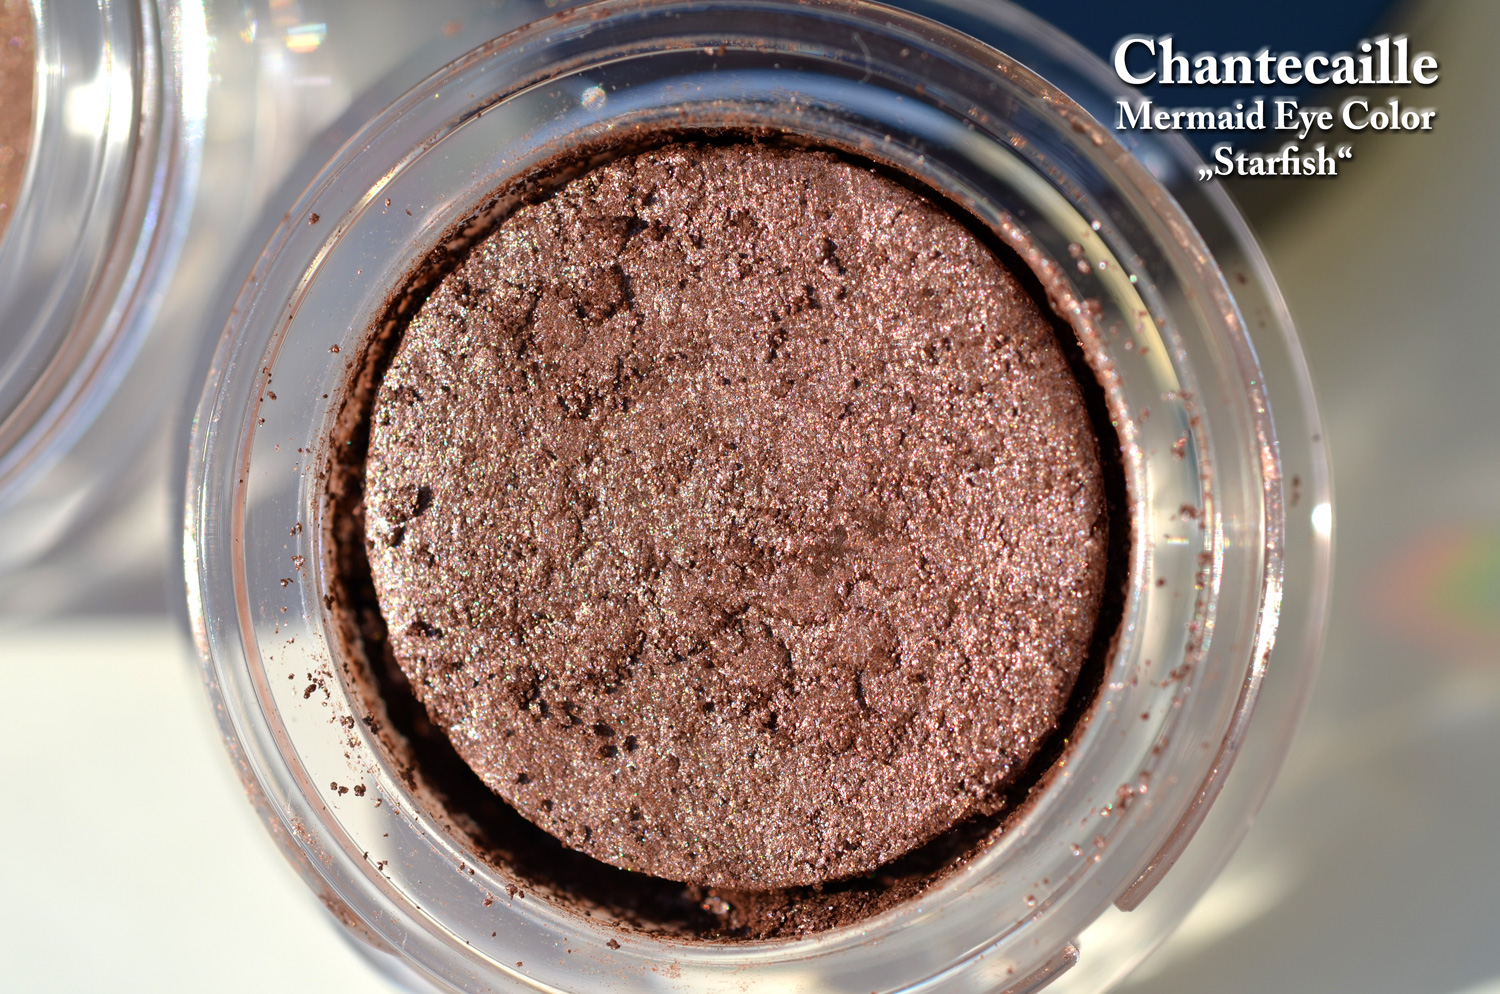 chantecaille-starfish-mermaid-eye-color